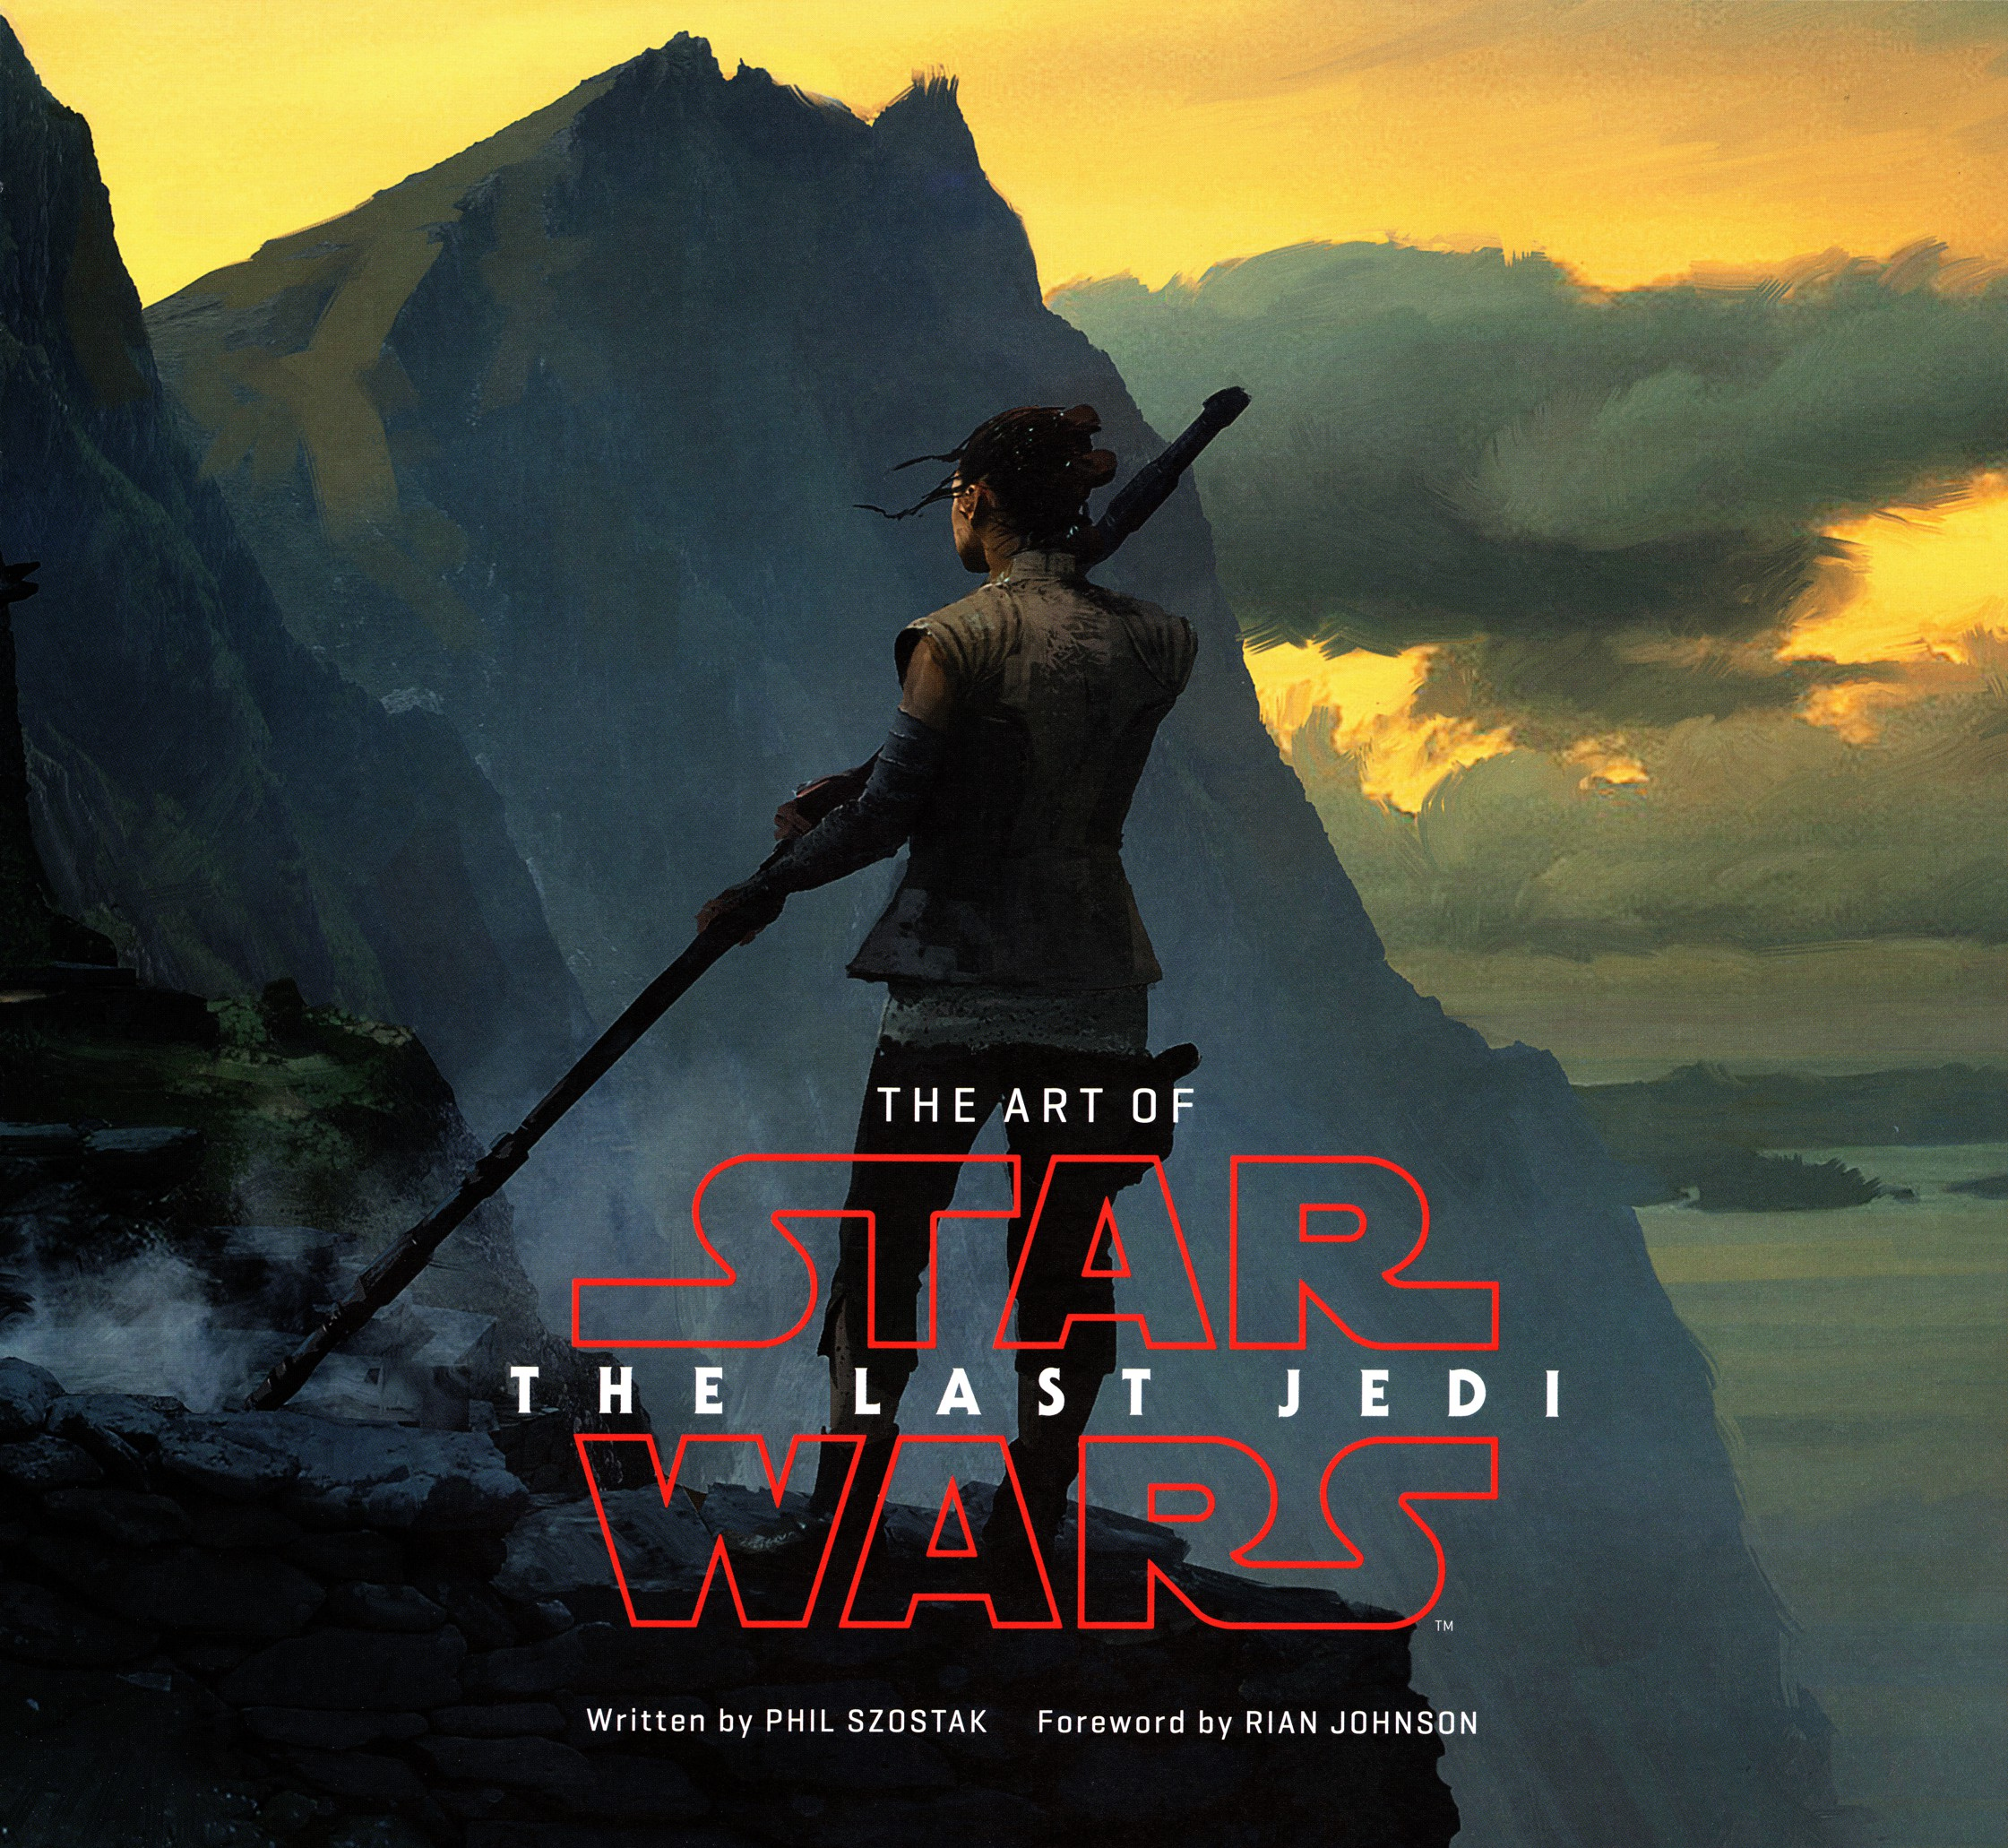 The Art of Star Wars – The Last Jedi